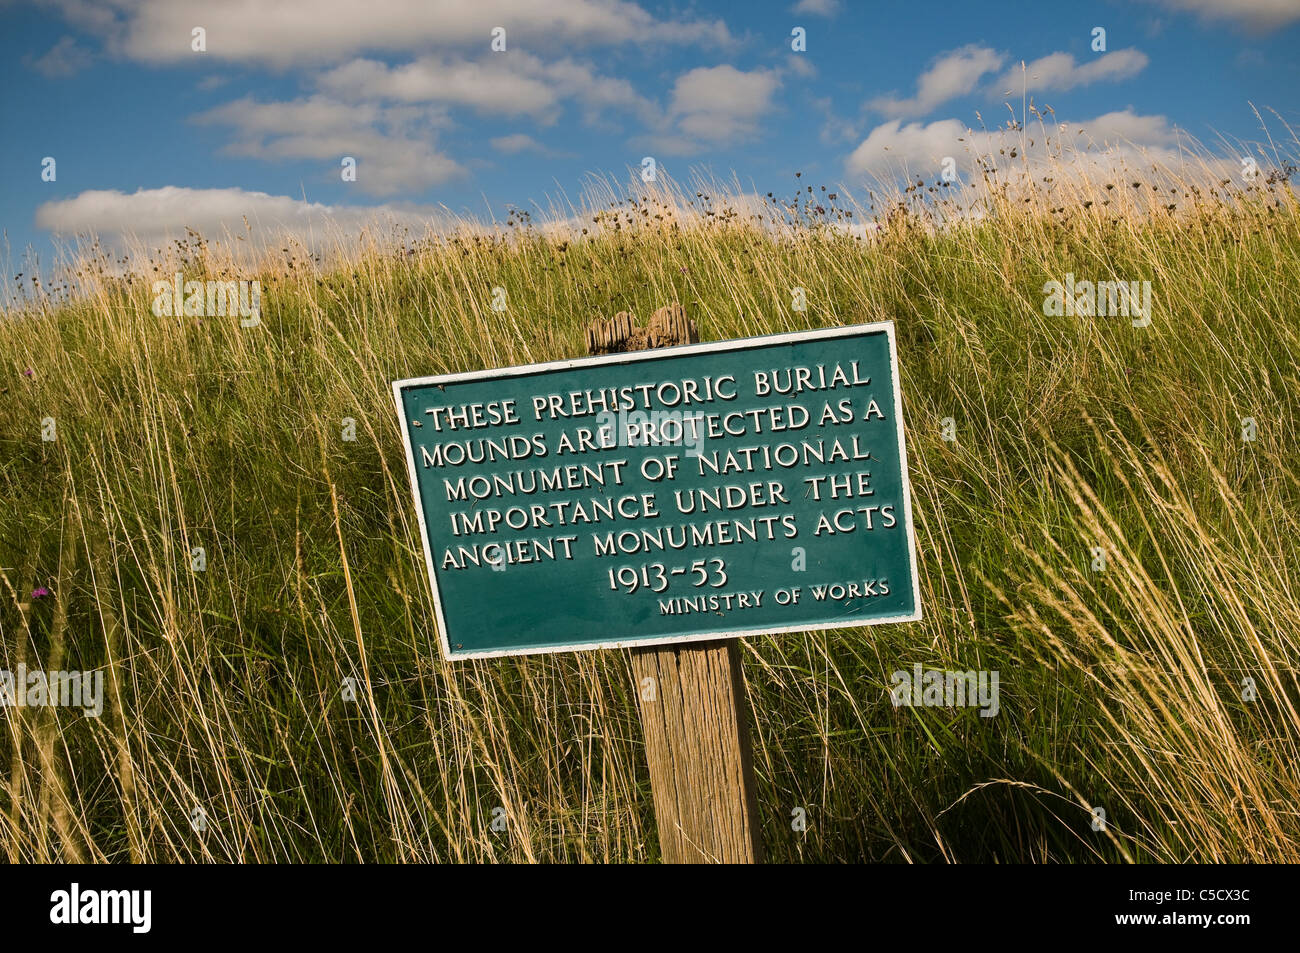 Ministry of Works sign at a prehistoric ancient monument site, Berkshire, UK - Stock Image